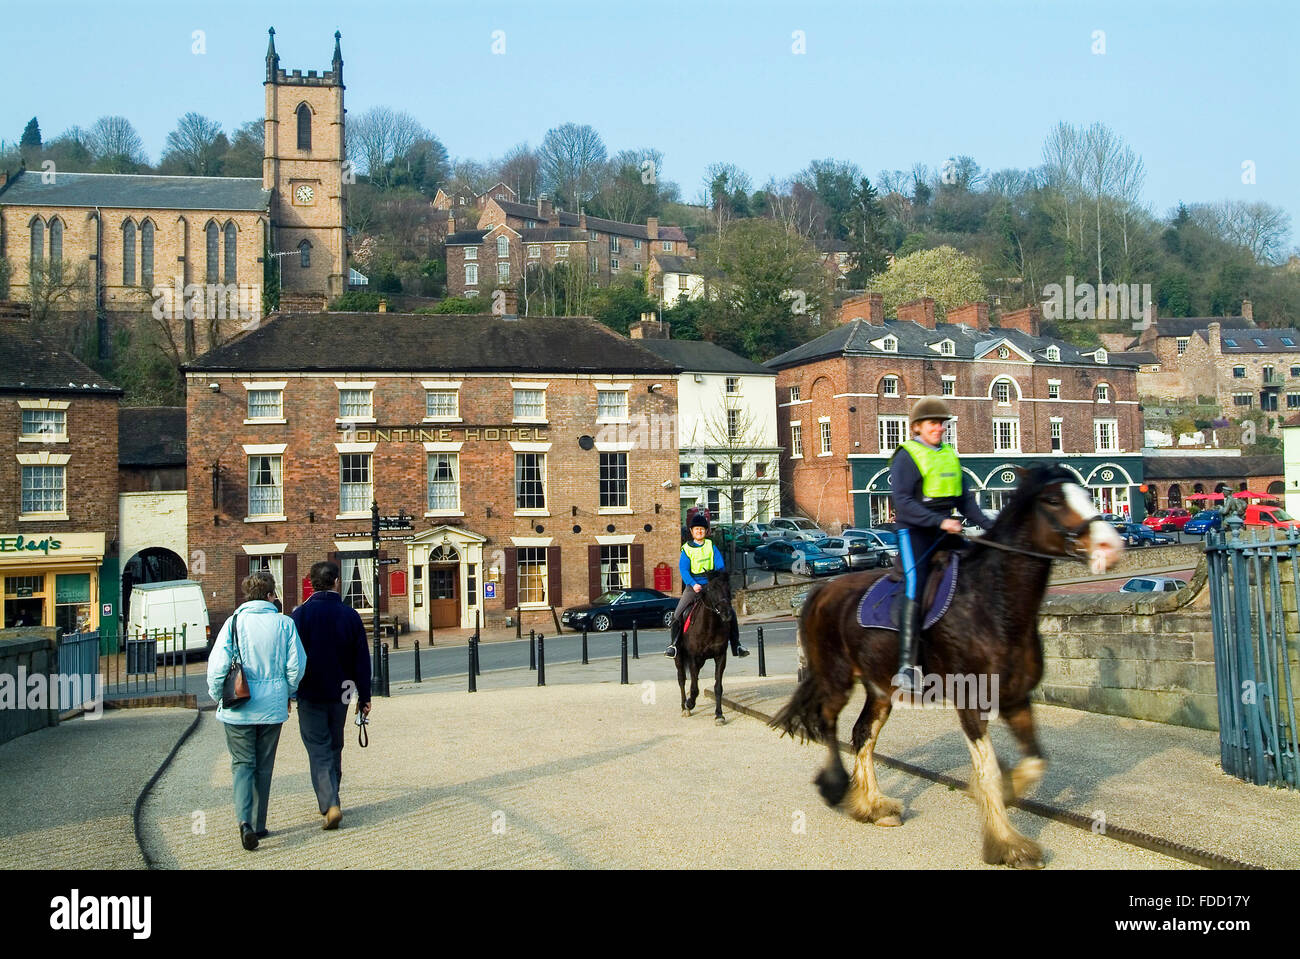 Horses and people on Ironbridge River Severn Telford Shropshire England GB Europe - Stock Image